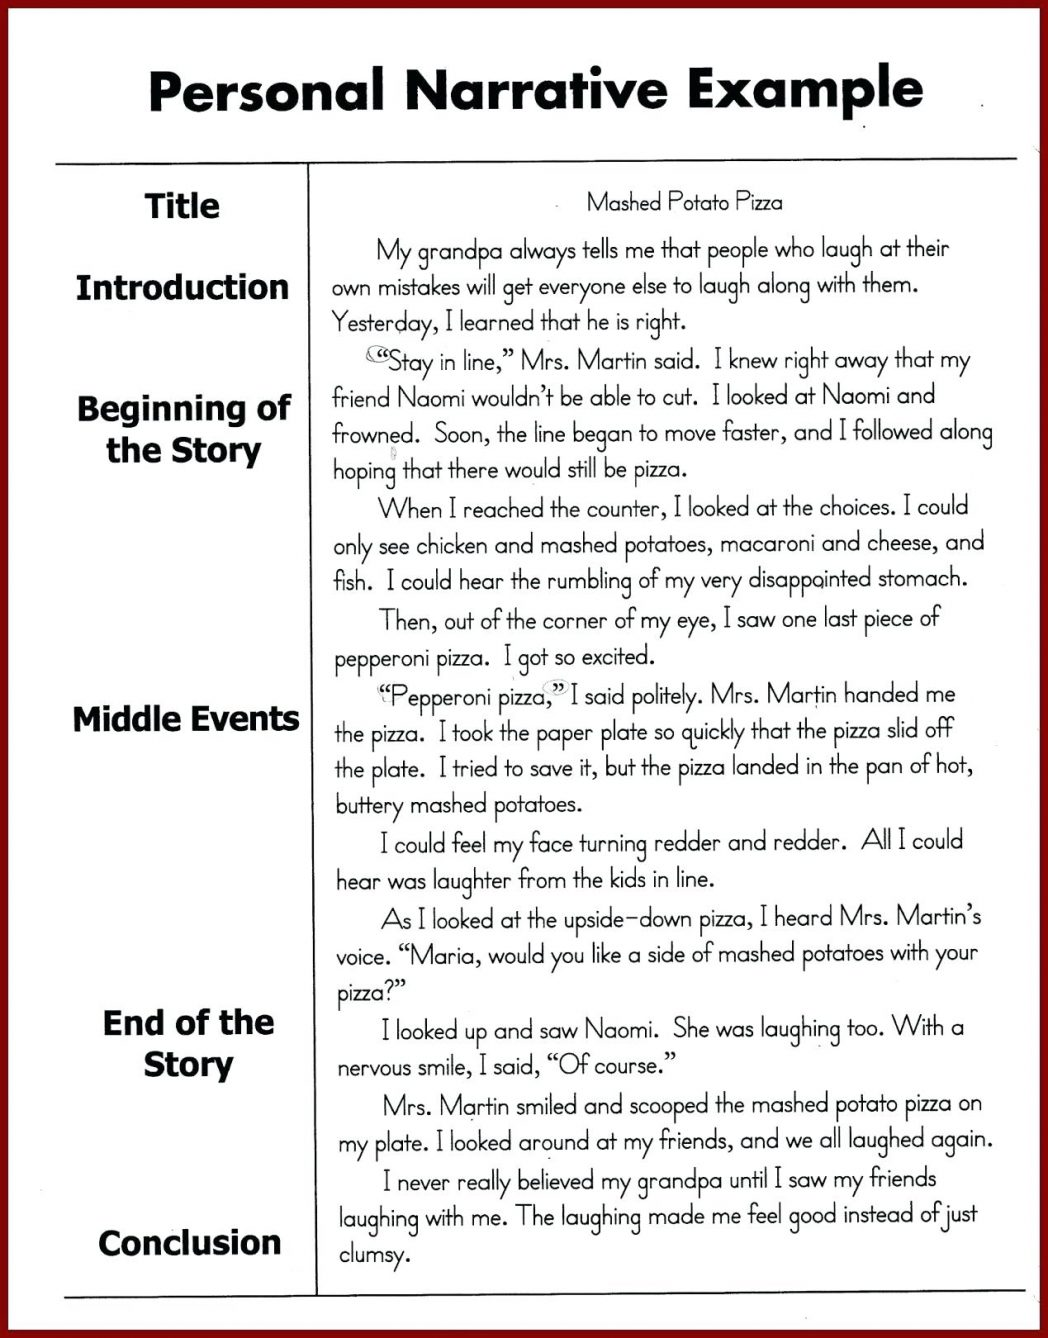 015 Autobiography Essay Example My Examples S Functis Bibliography Kindredsouls Us How To Write An For High School Autobiographical Examp Grad College Biography Unique Of About Yourself Tagalog Bio Students Full